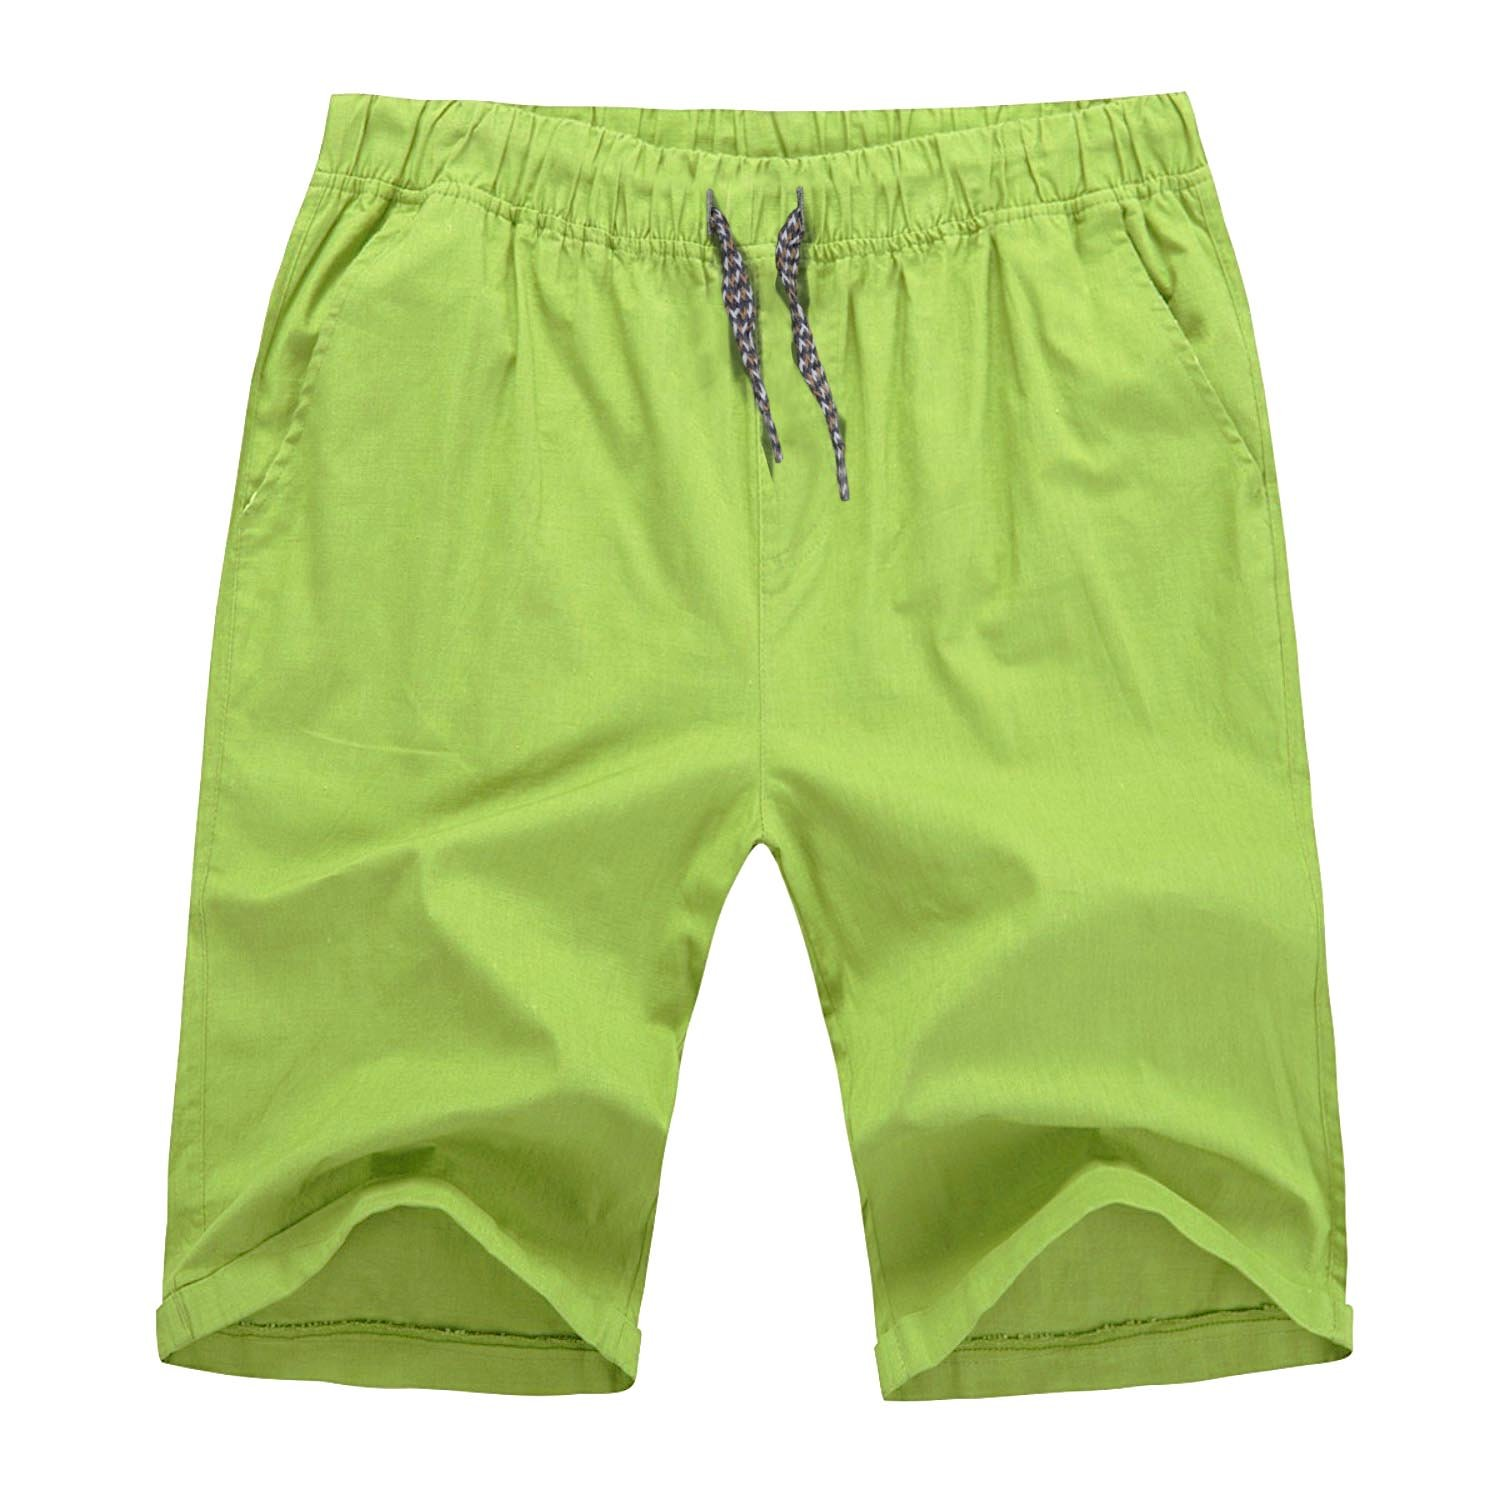 Hat and Beyond to Mens Flat Front Summer Shorts Casual Twill Classic Fit (X-Large, 7 Lime)